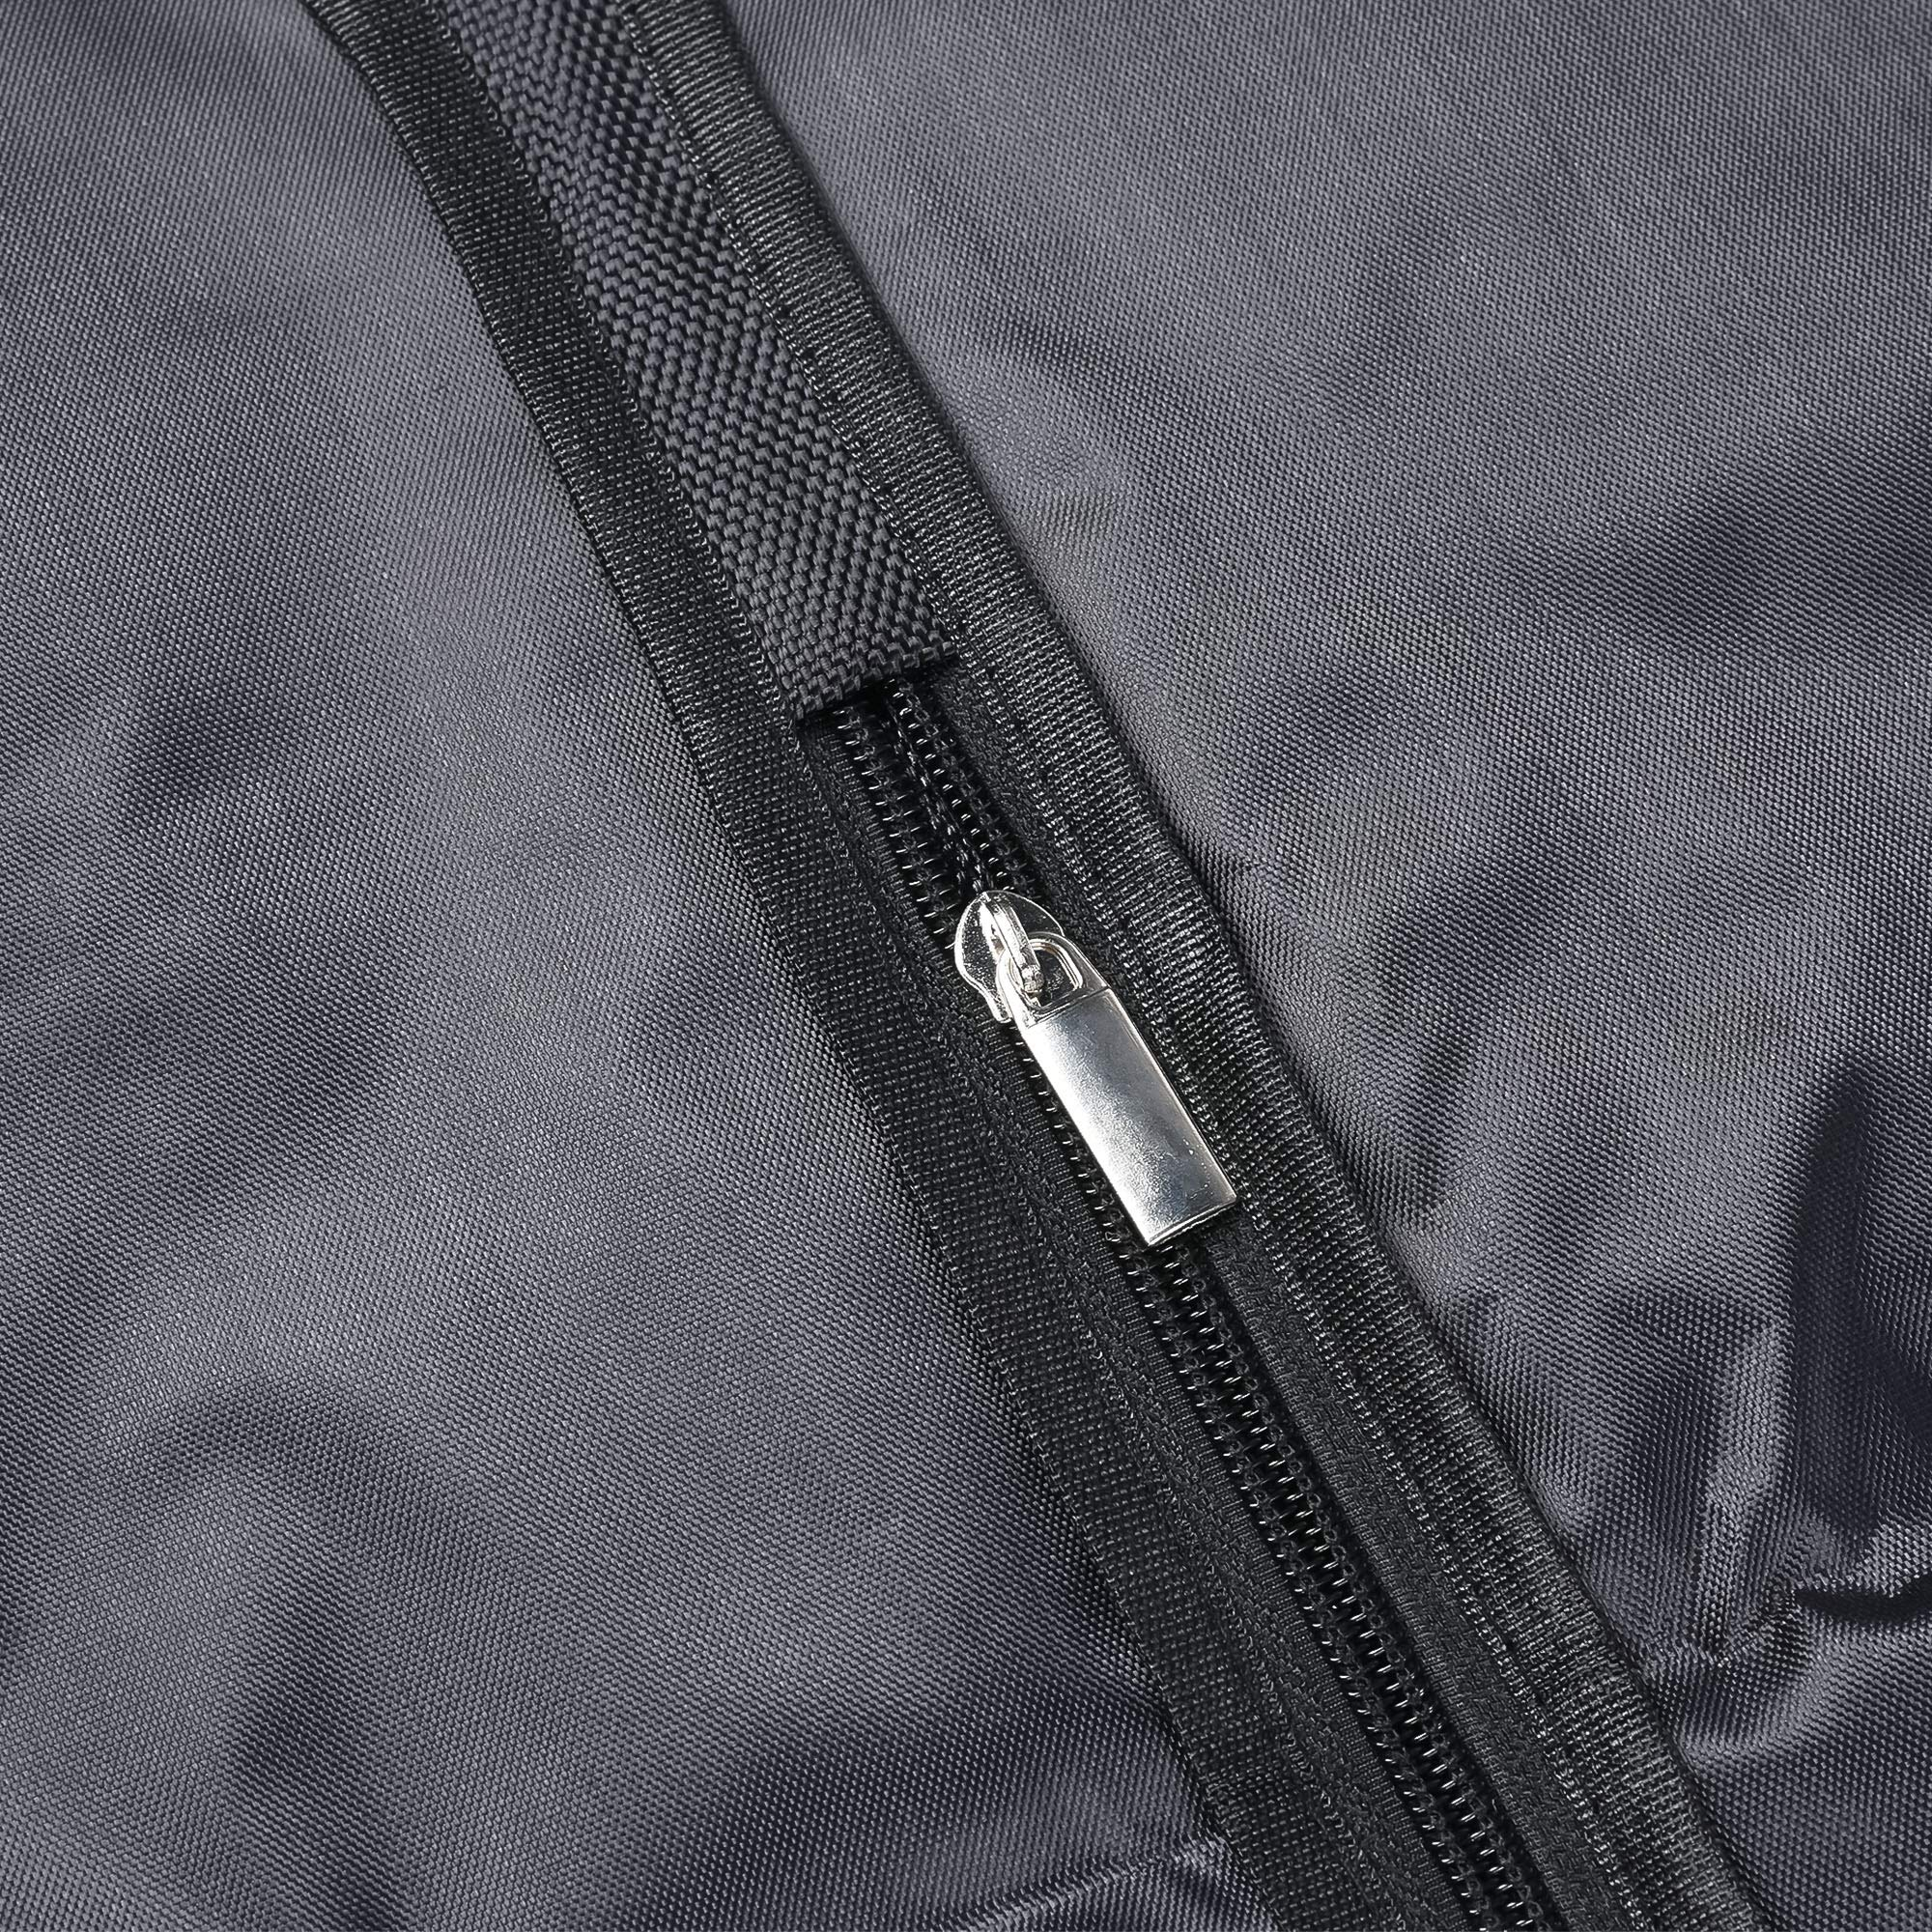 COSMOS Suit & Dress Travel Storage Garment Bag Carry Bag with Handles, 39 x 23 inches by CM (Image #5)